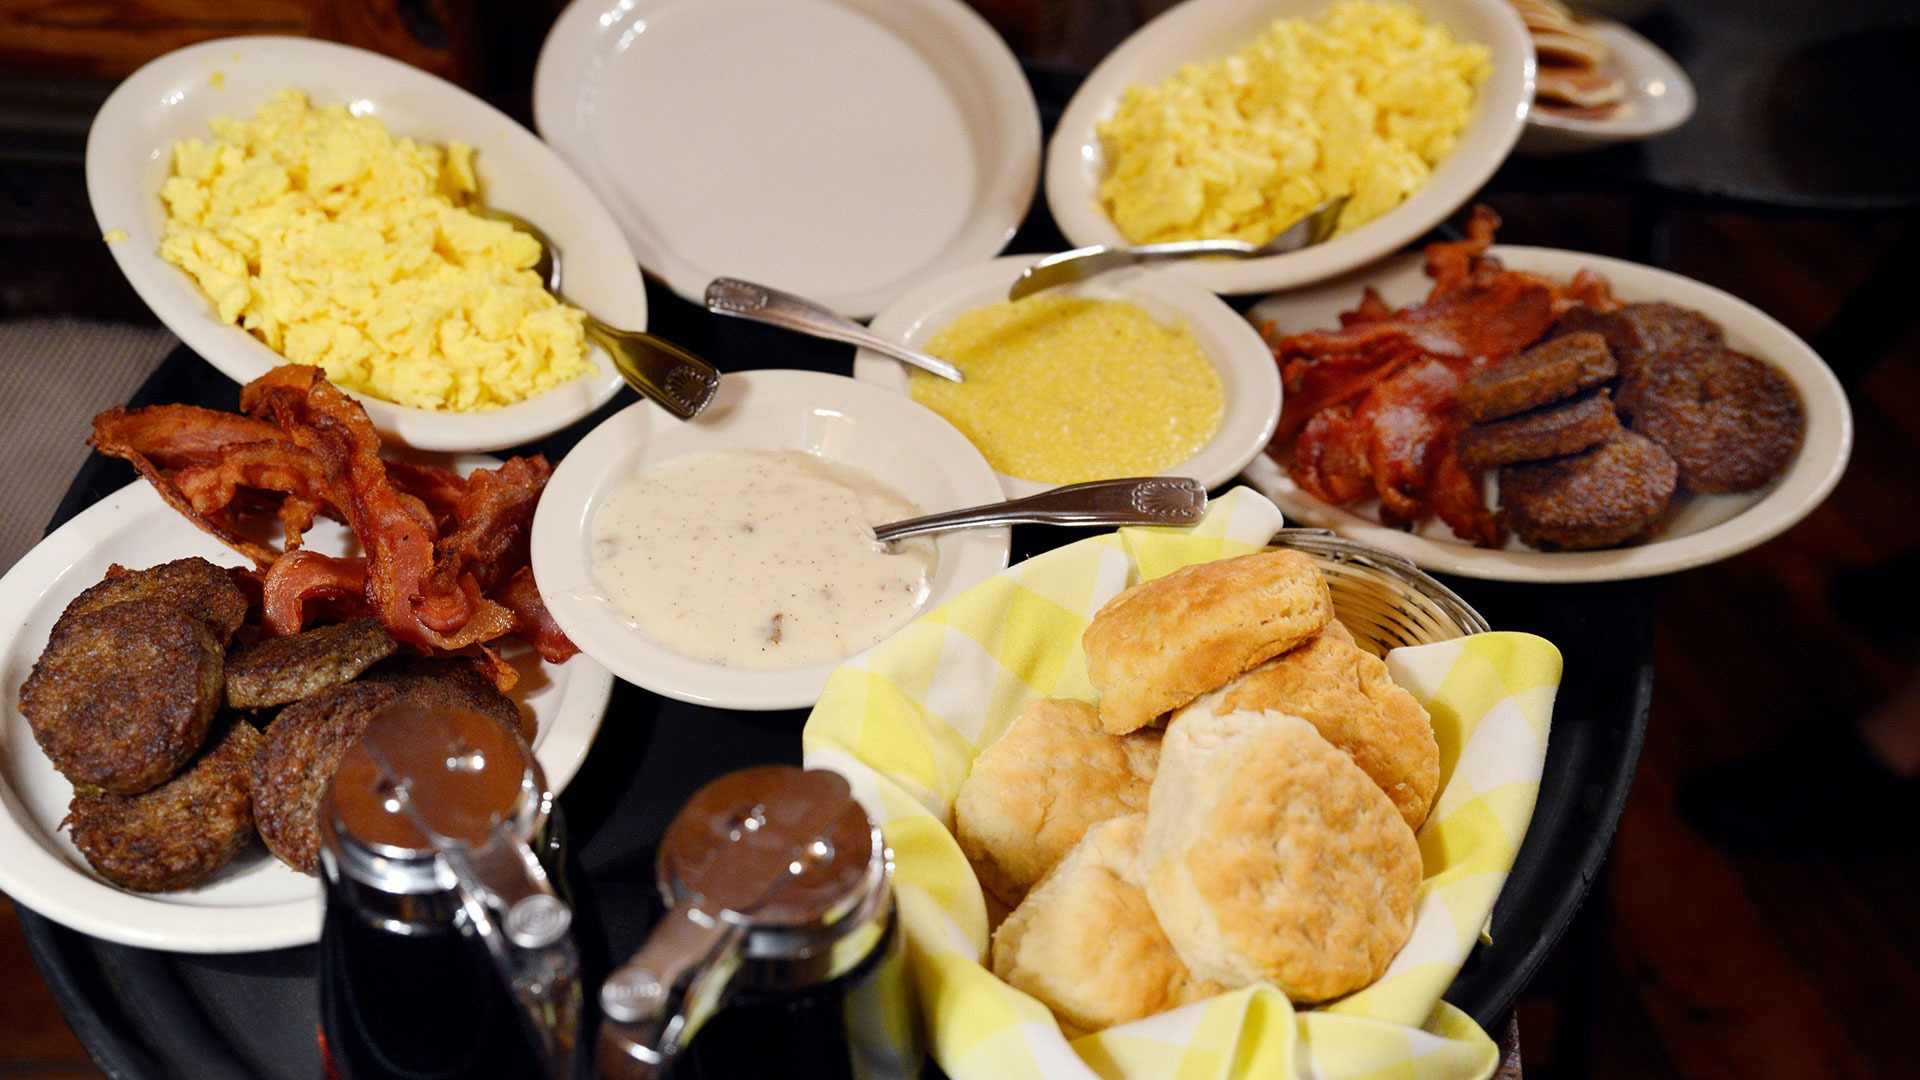 Old Mill breakfast being served